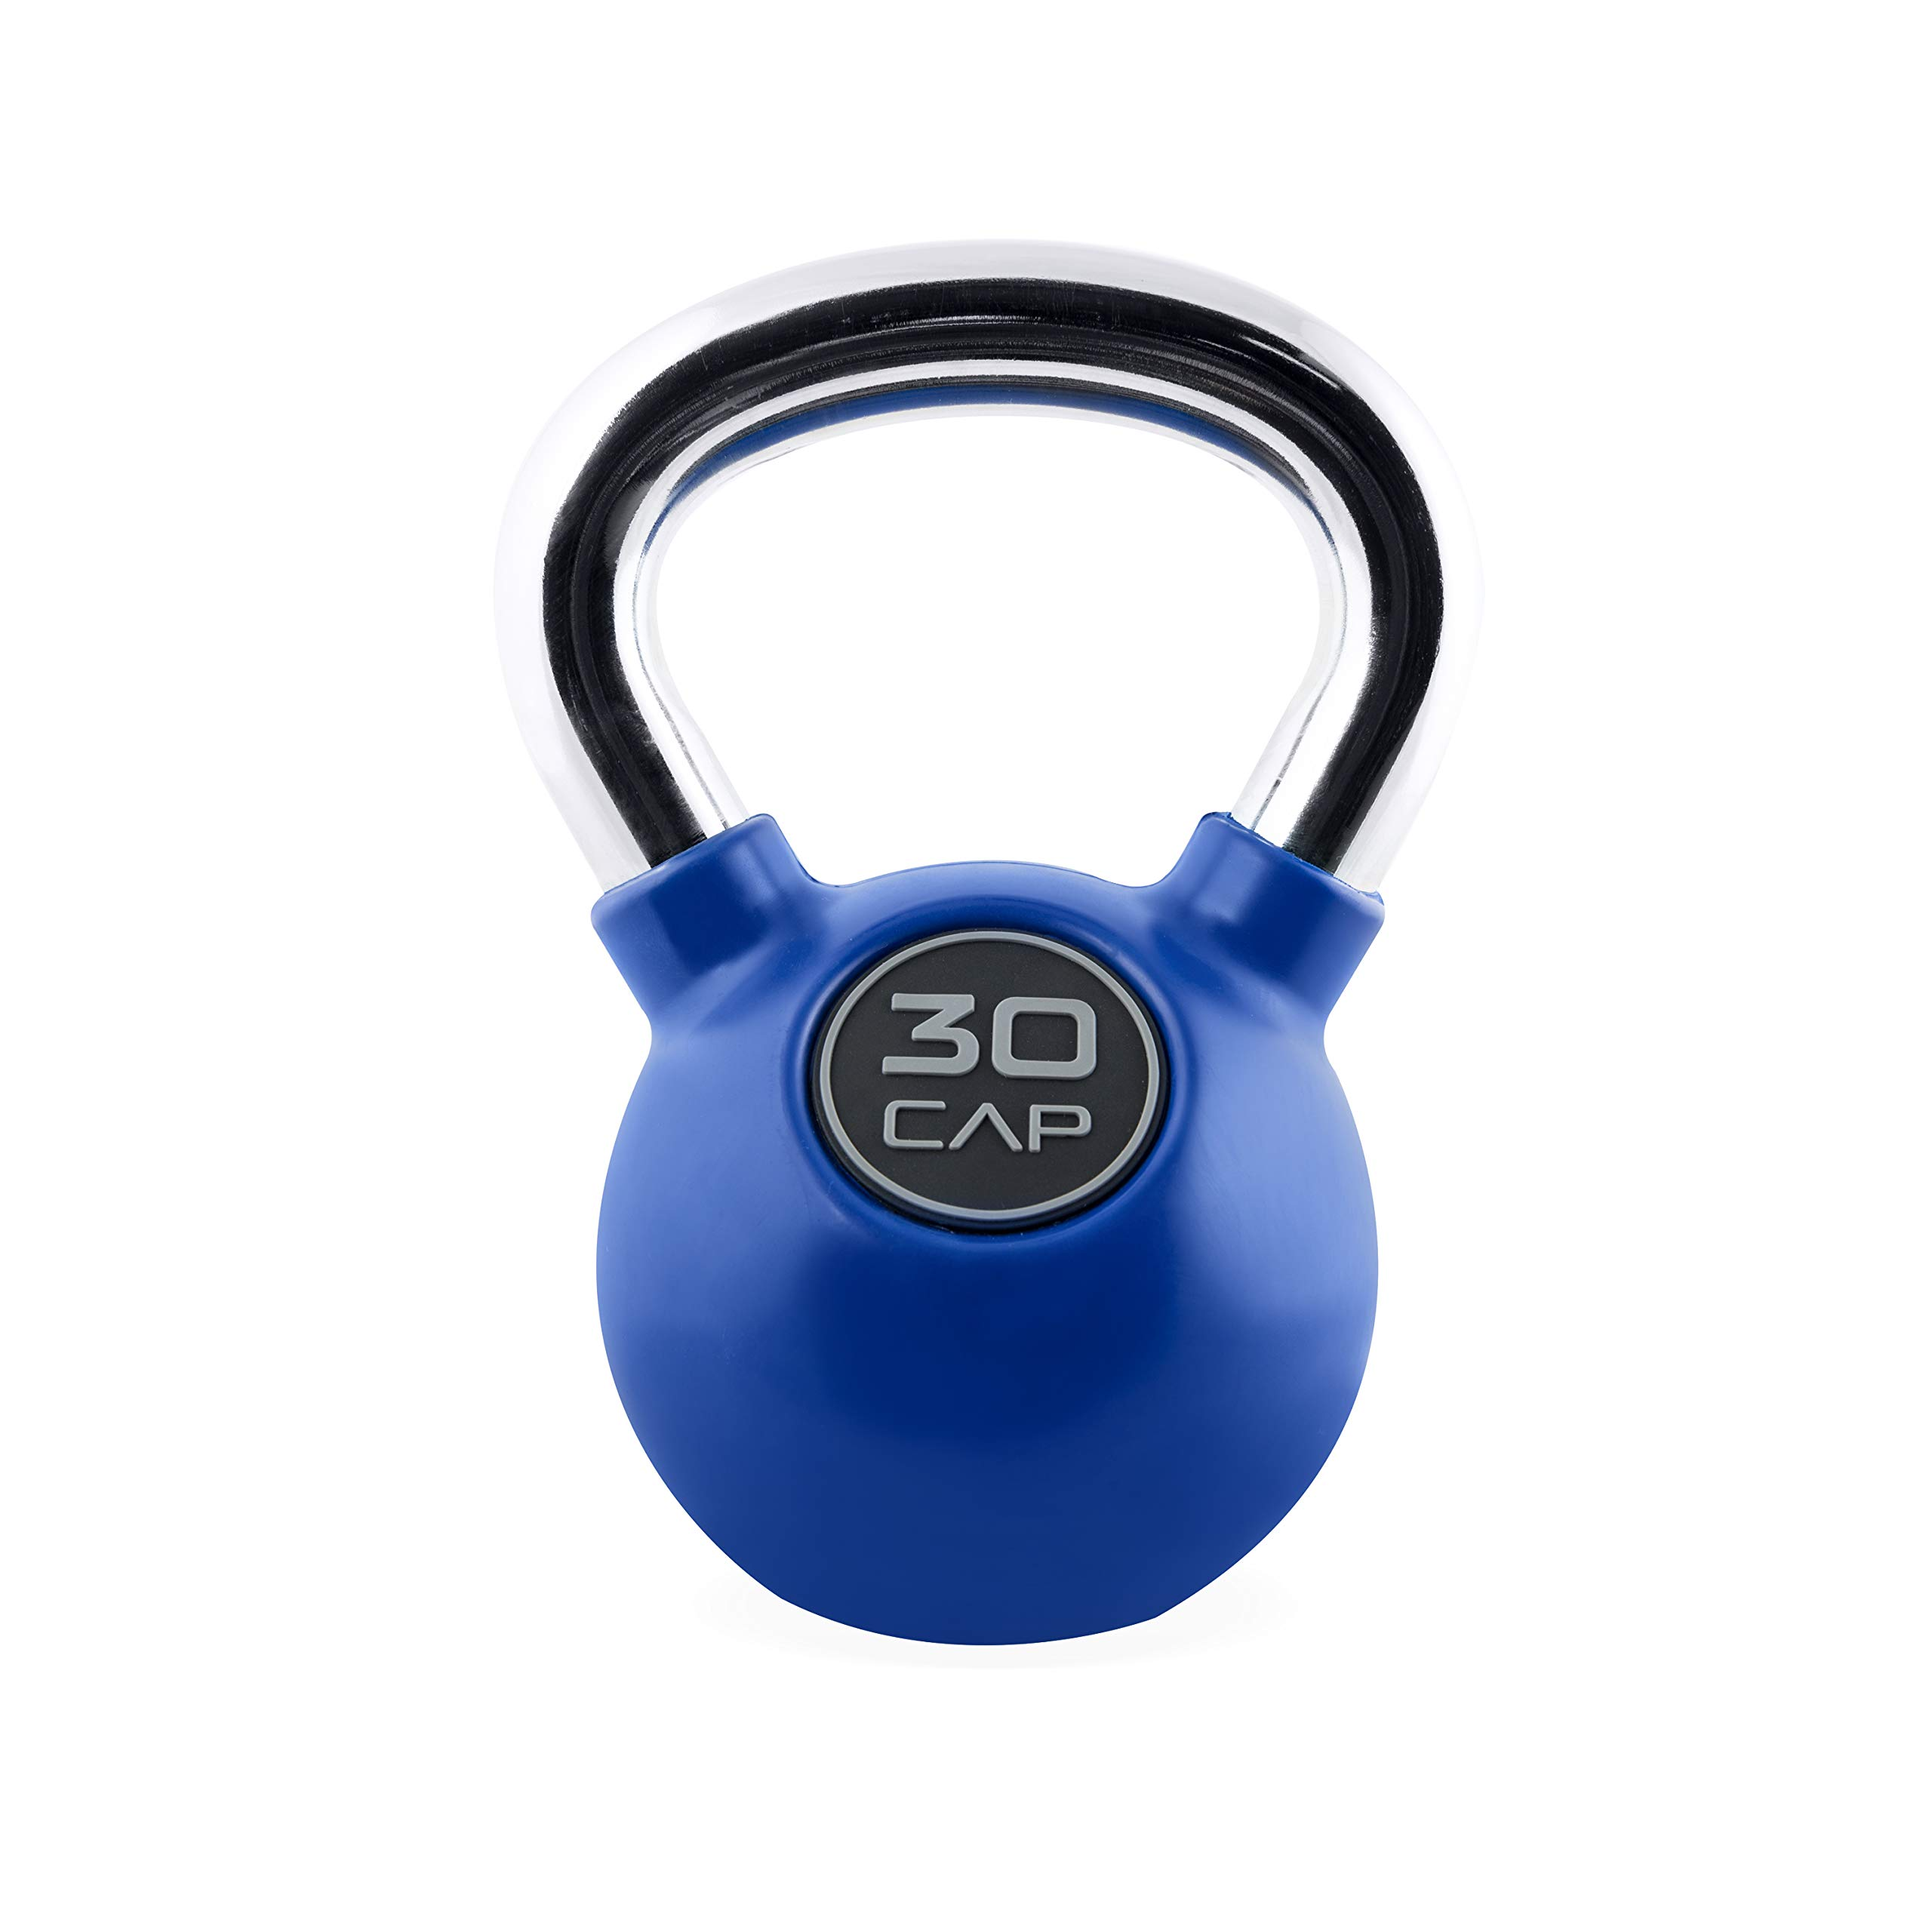 Cap Colored Rubber Coated Kettlebell with Chrome Handle, 30 lb